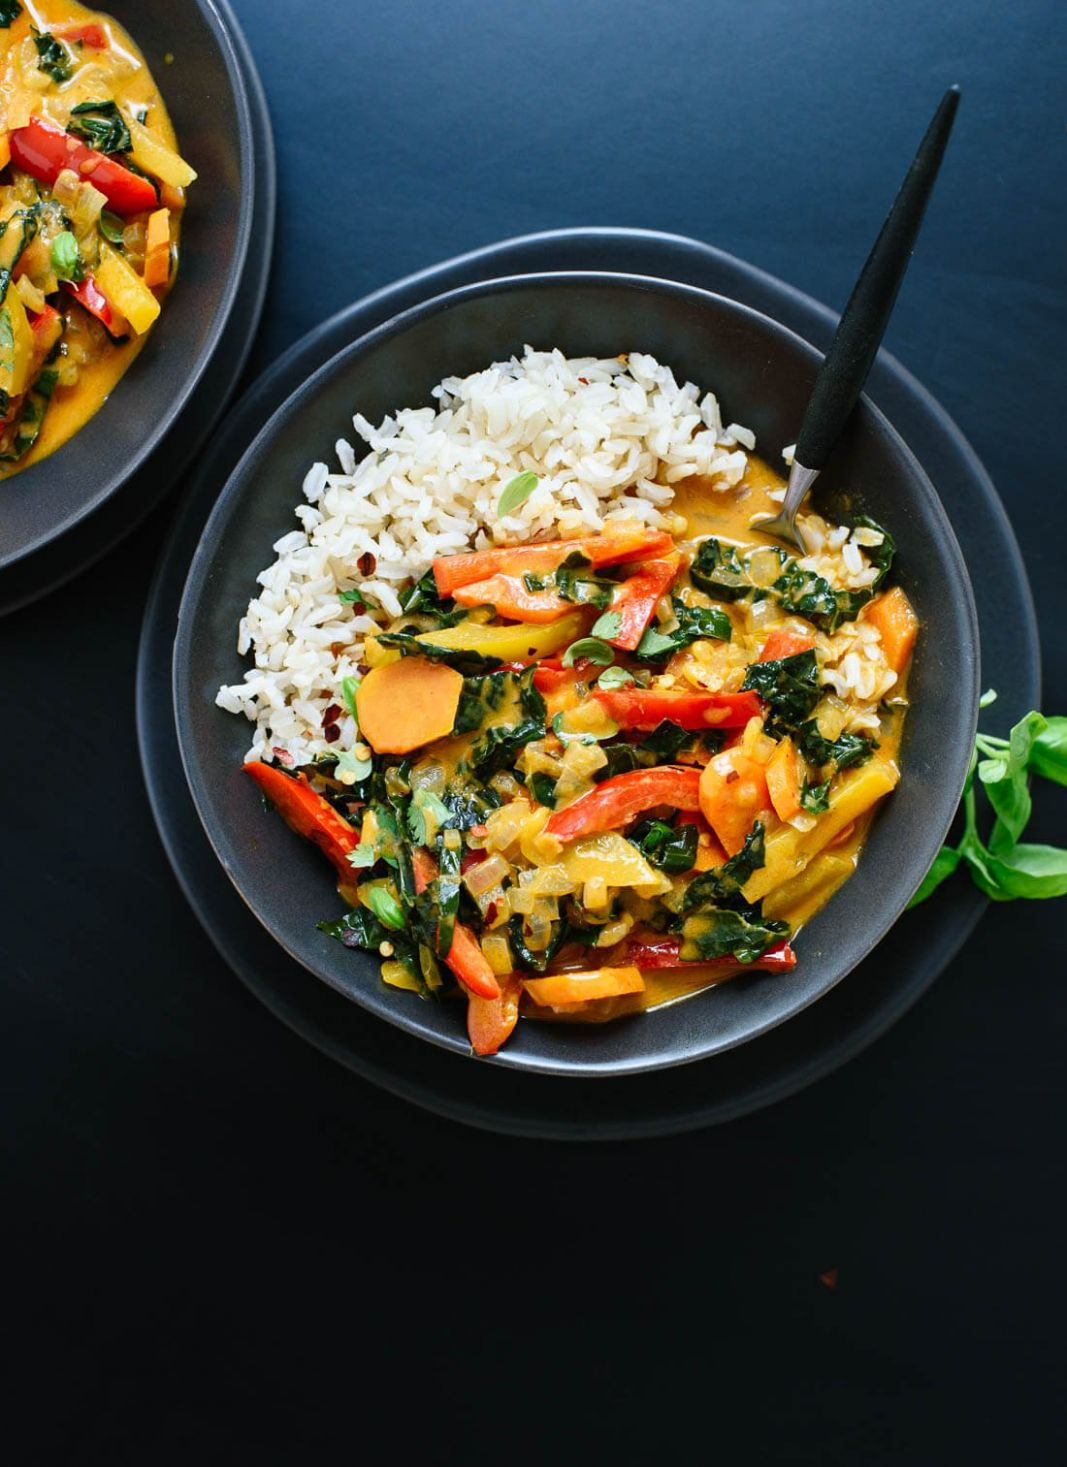 Thai Red Curry with Vegetables - Food Recipes Curry